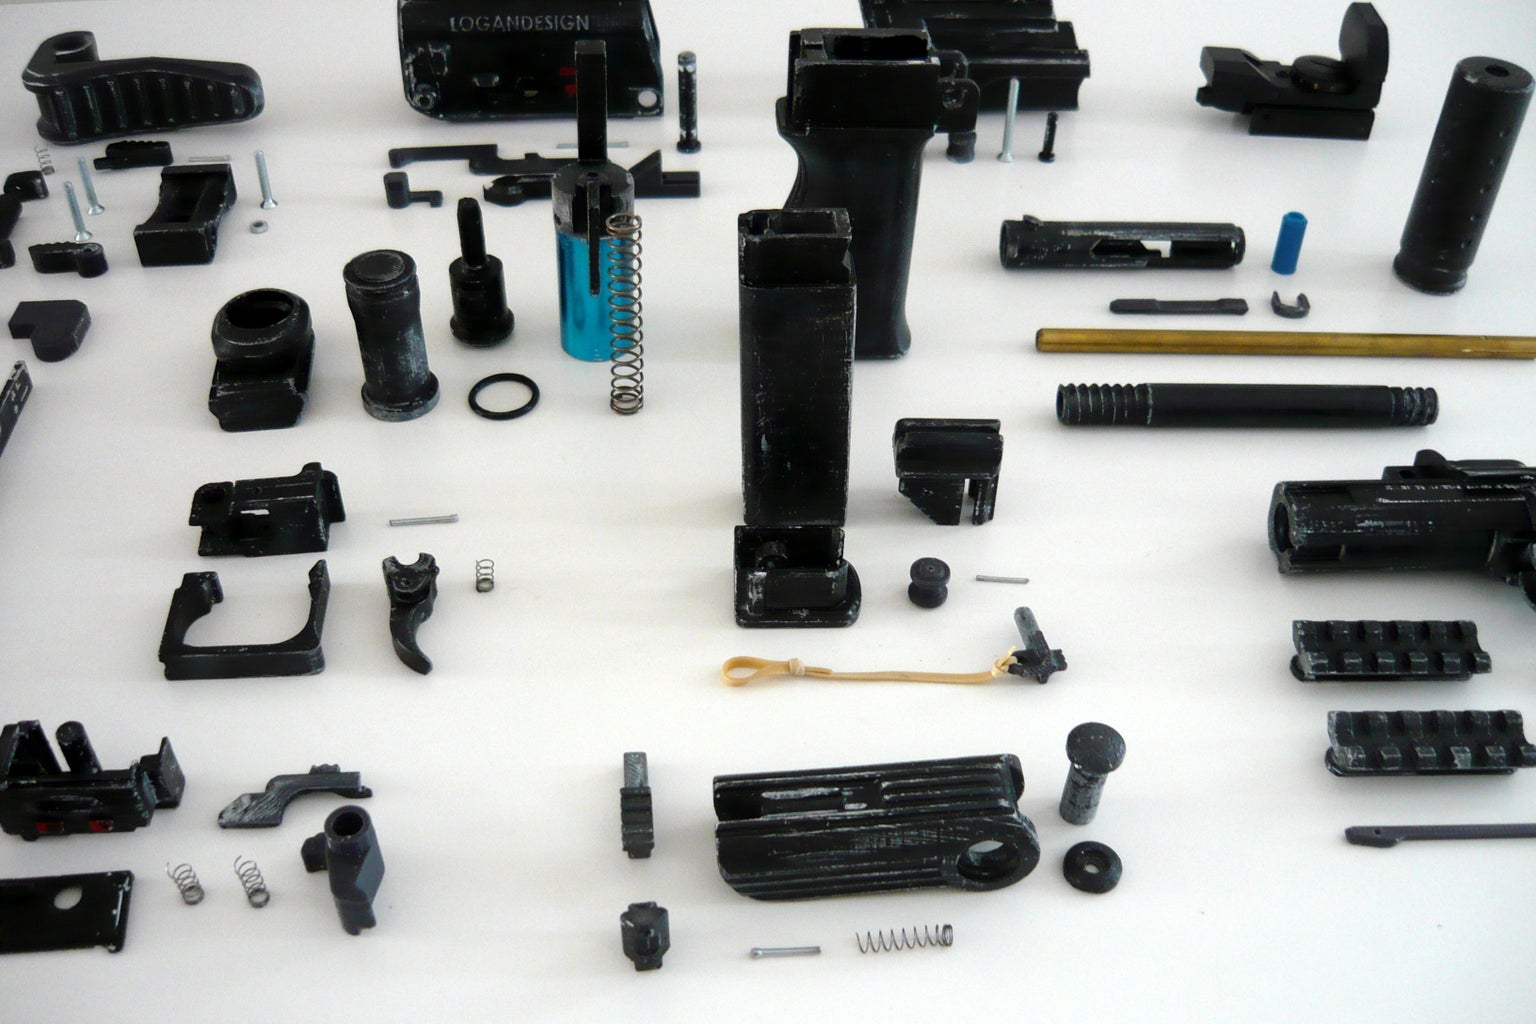 Printing and Collecting Parts